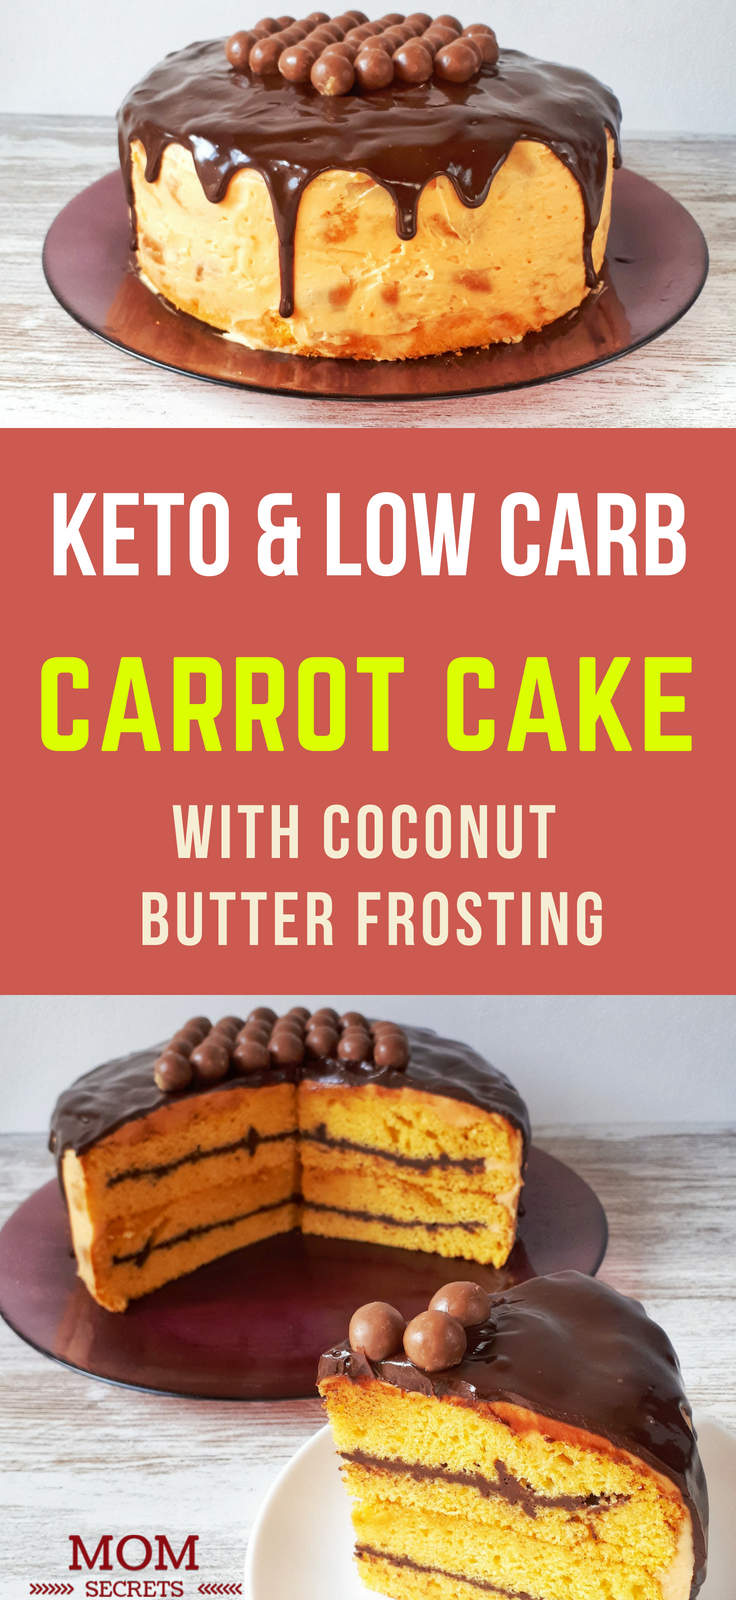 This amazing layer carrot cake is sugar, grain, and dairy-free. It is also low carb, keto, and paleo. It's perfect for a birthday cake!